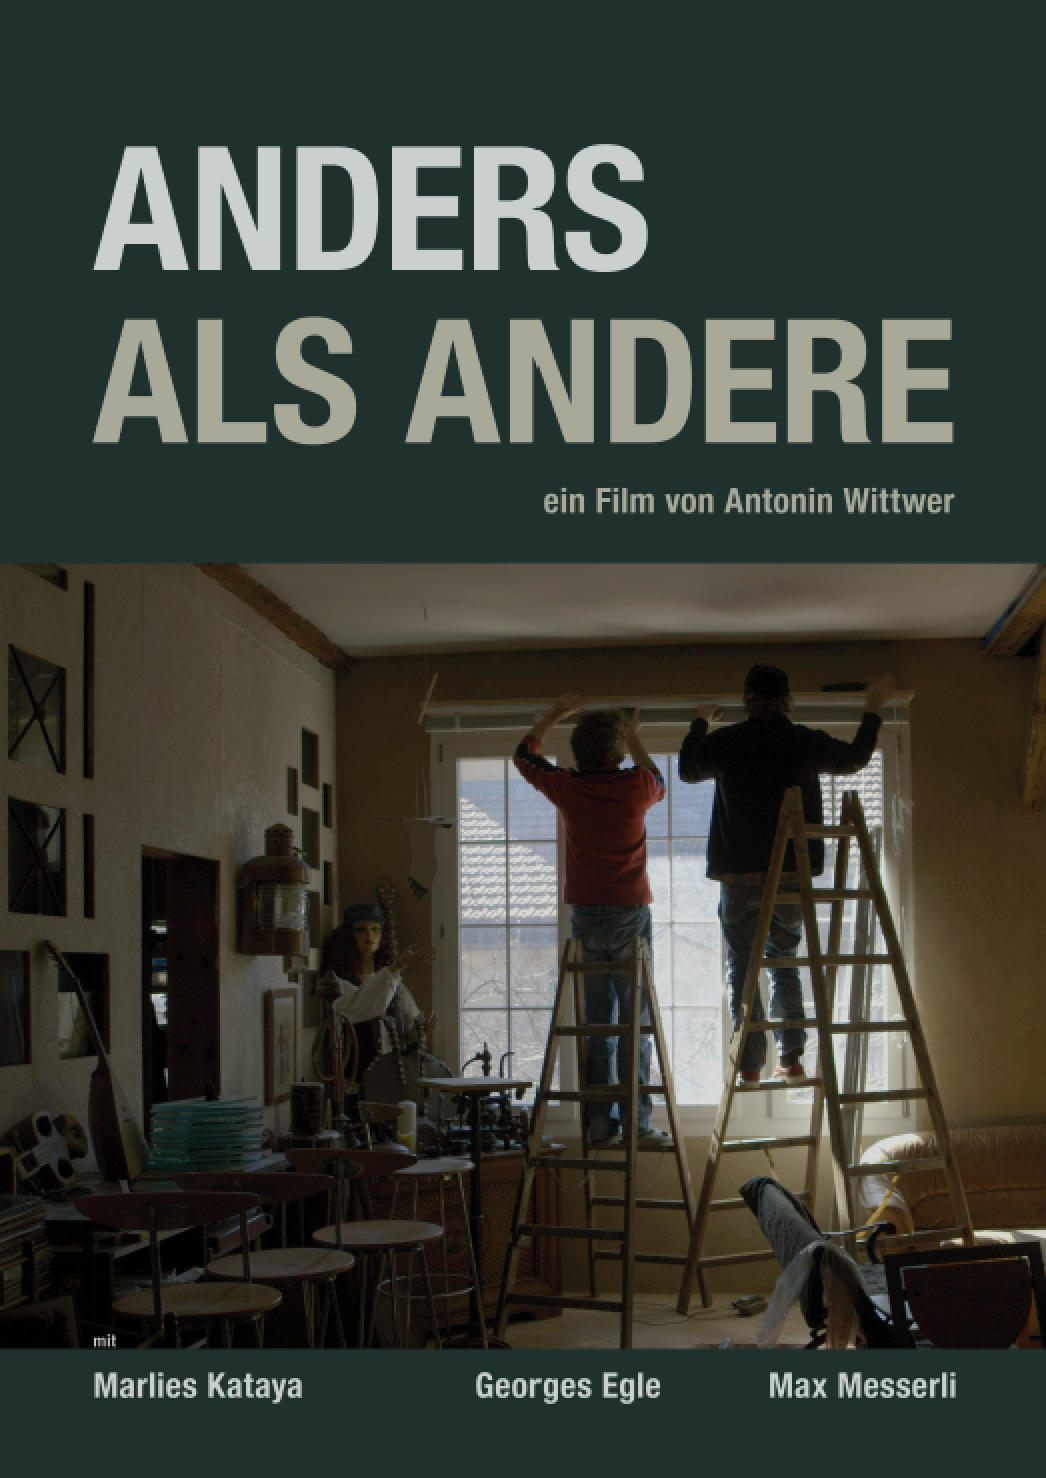 Anders als andere -